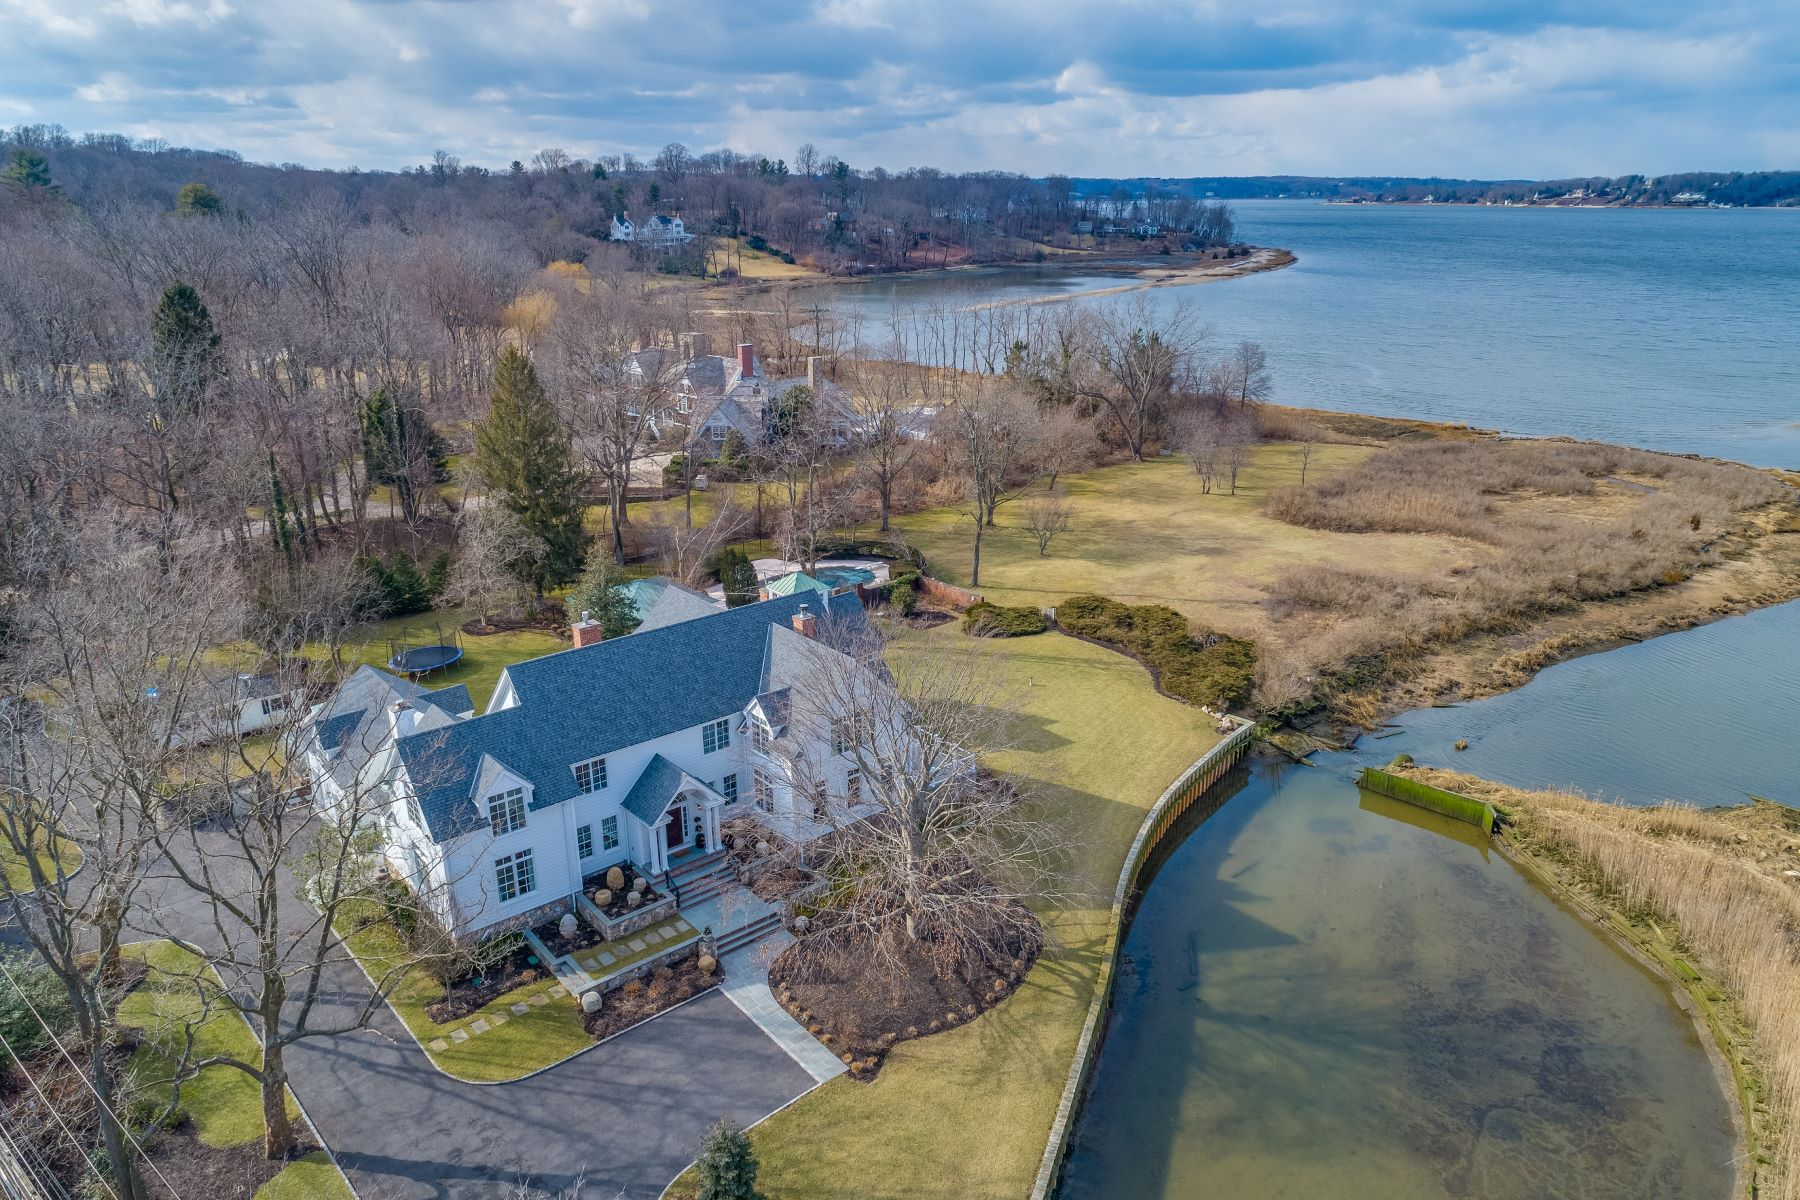 Single Family Homes for Active at Oyster Bay 3 Cove Neck Rd Oyster Bay, New York 11771 United States